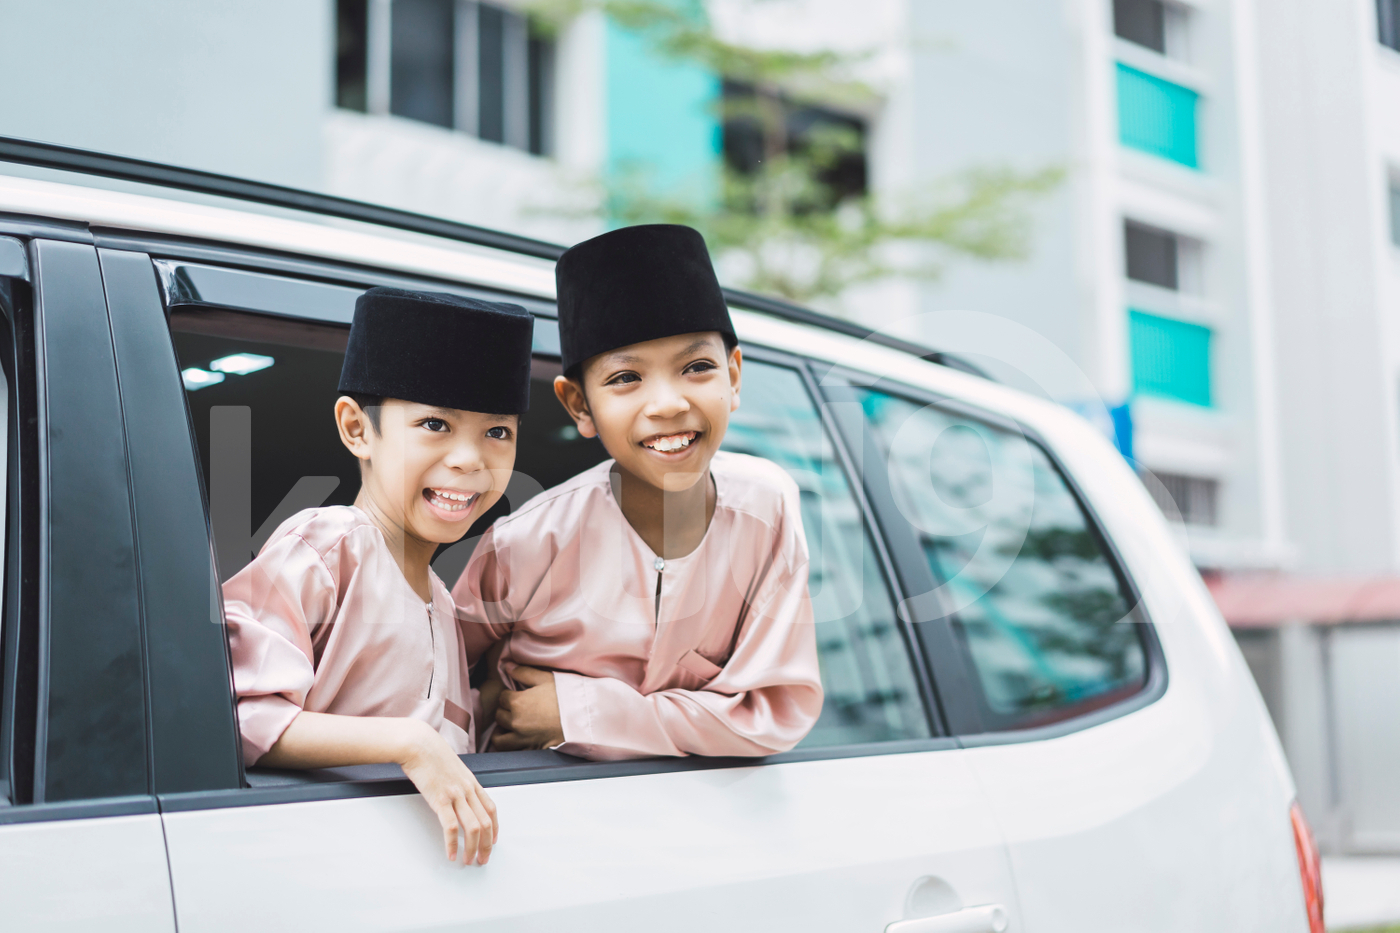 Two Malay boys looking out of the car window